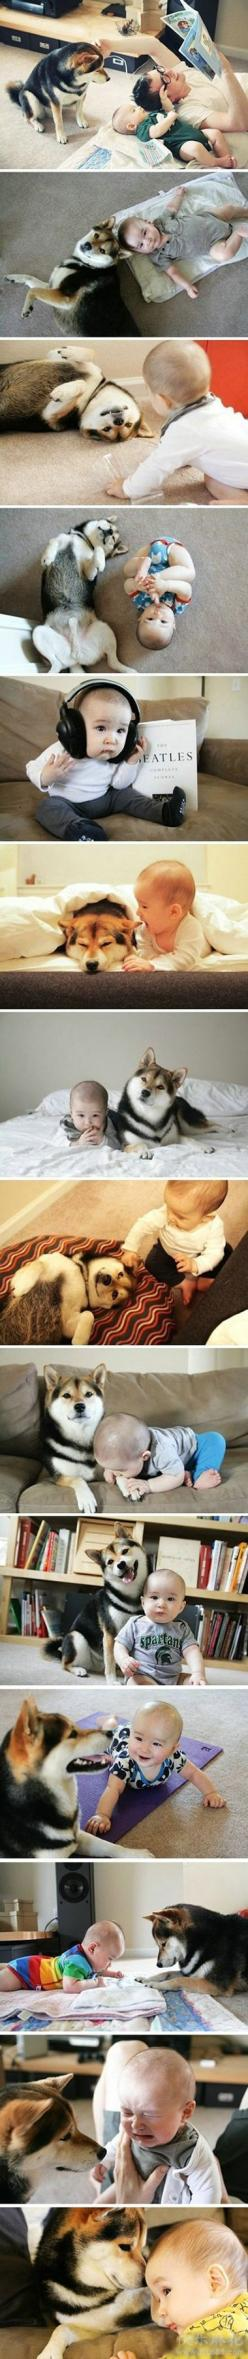 dogs and babies are so cute: Babies, Dogs, Sweet, Best Friends, Shiba Inu, Puppy, Animal, Kid